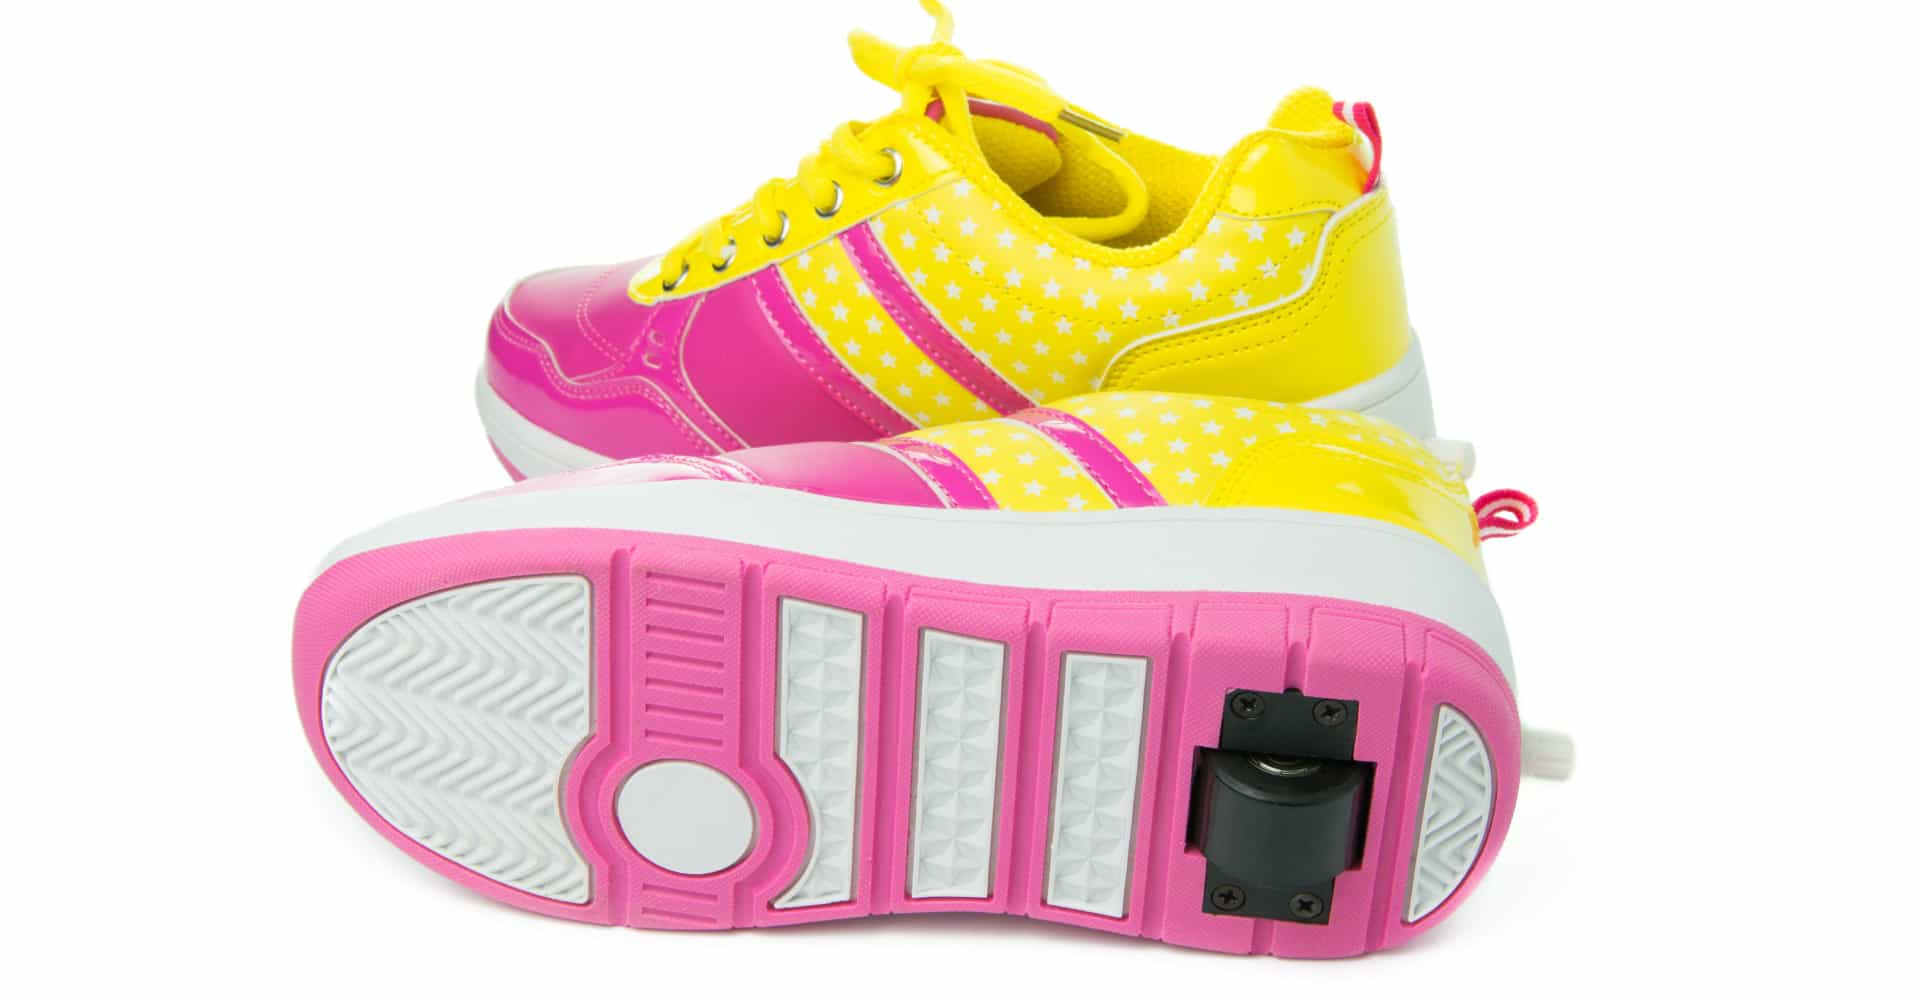 There's now a modern version of Heelys, the shoes with wheels